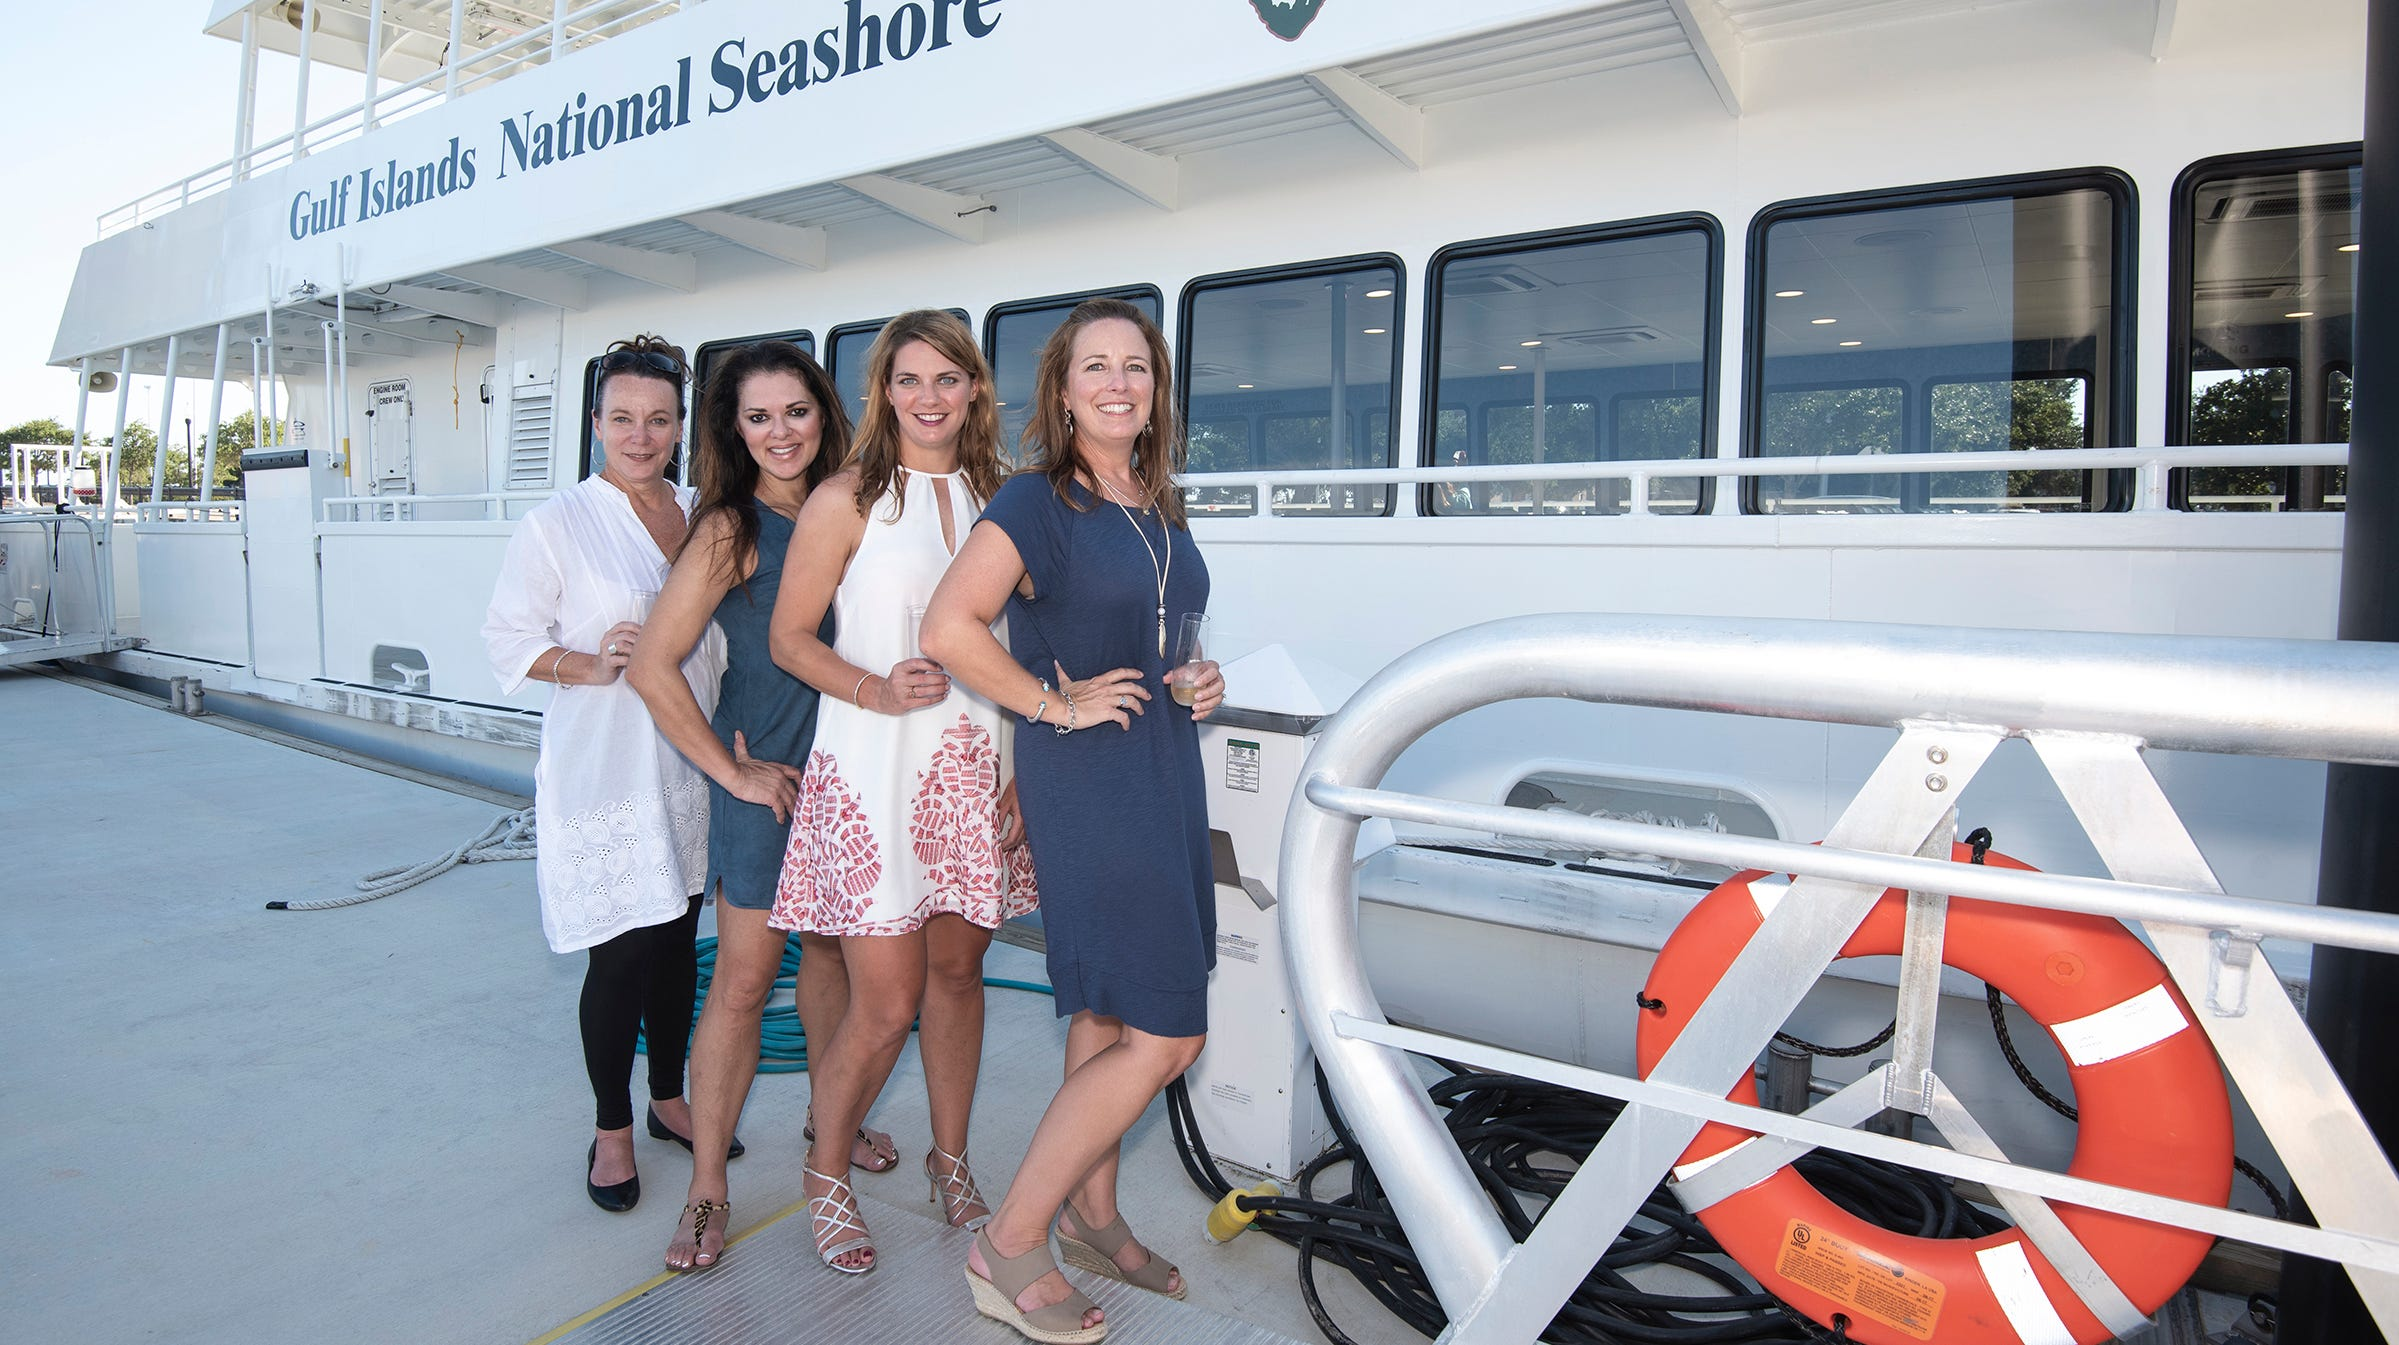 Lisa Sharp, Lisa Roper, Bridget Helm and Kelly MacLeod have arrived at the downtown city dock and are ready to hit the downtown hotspots.